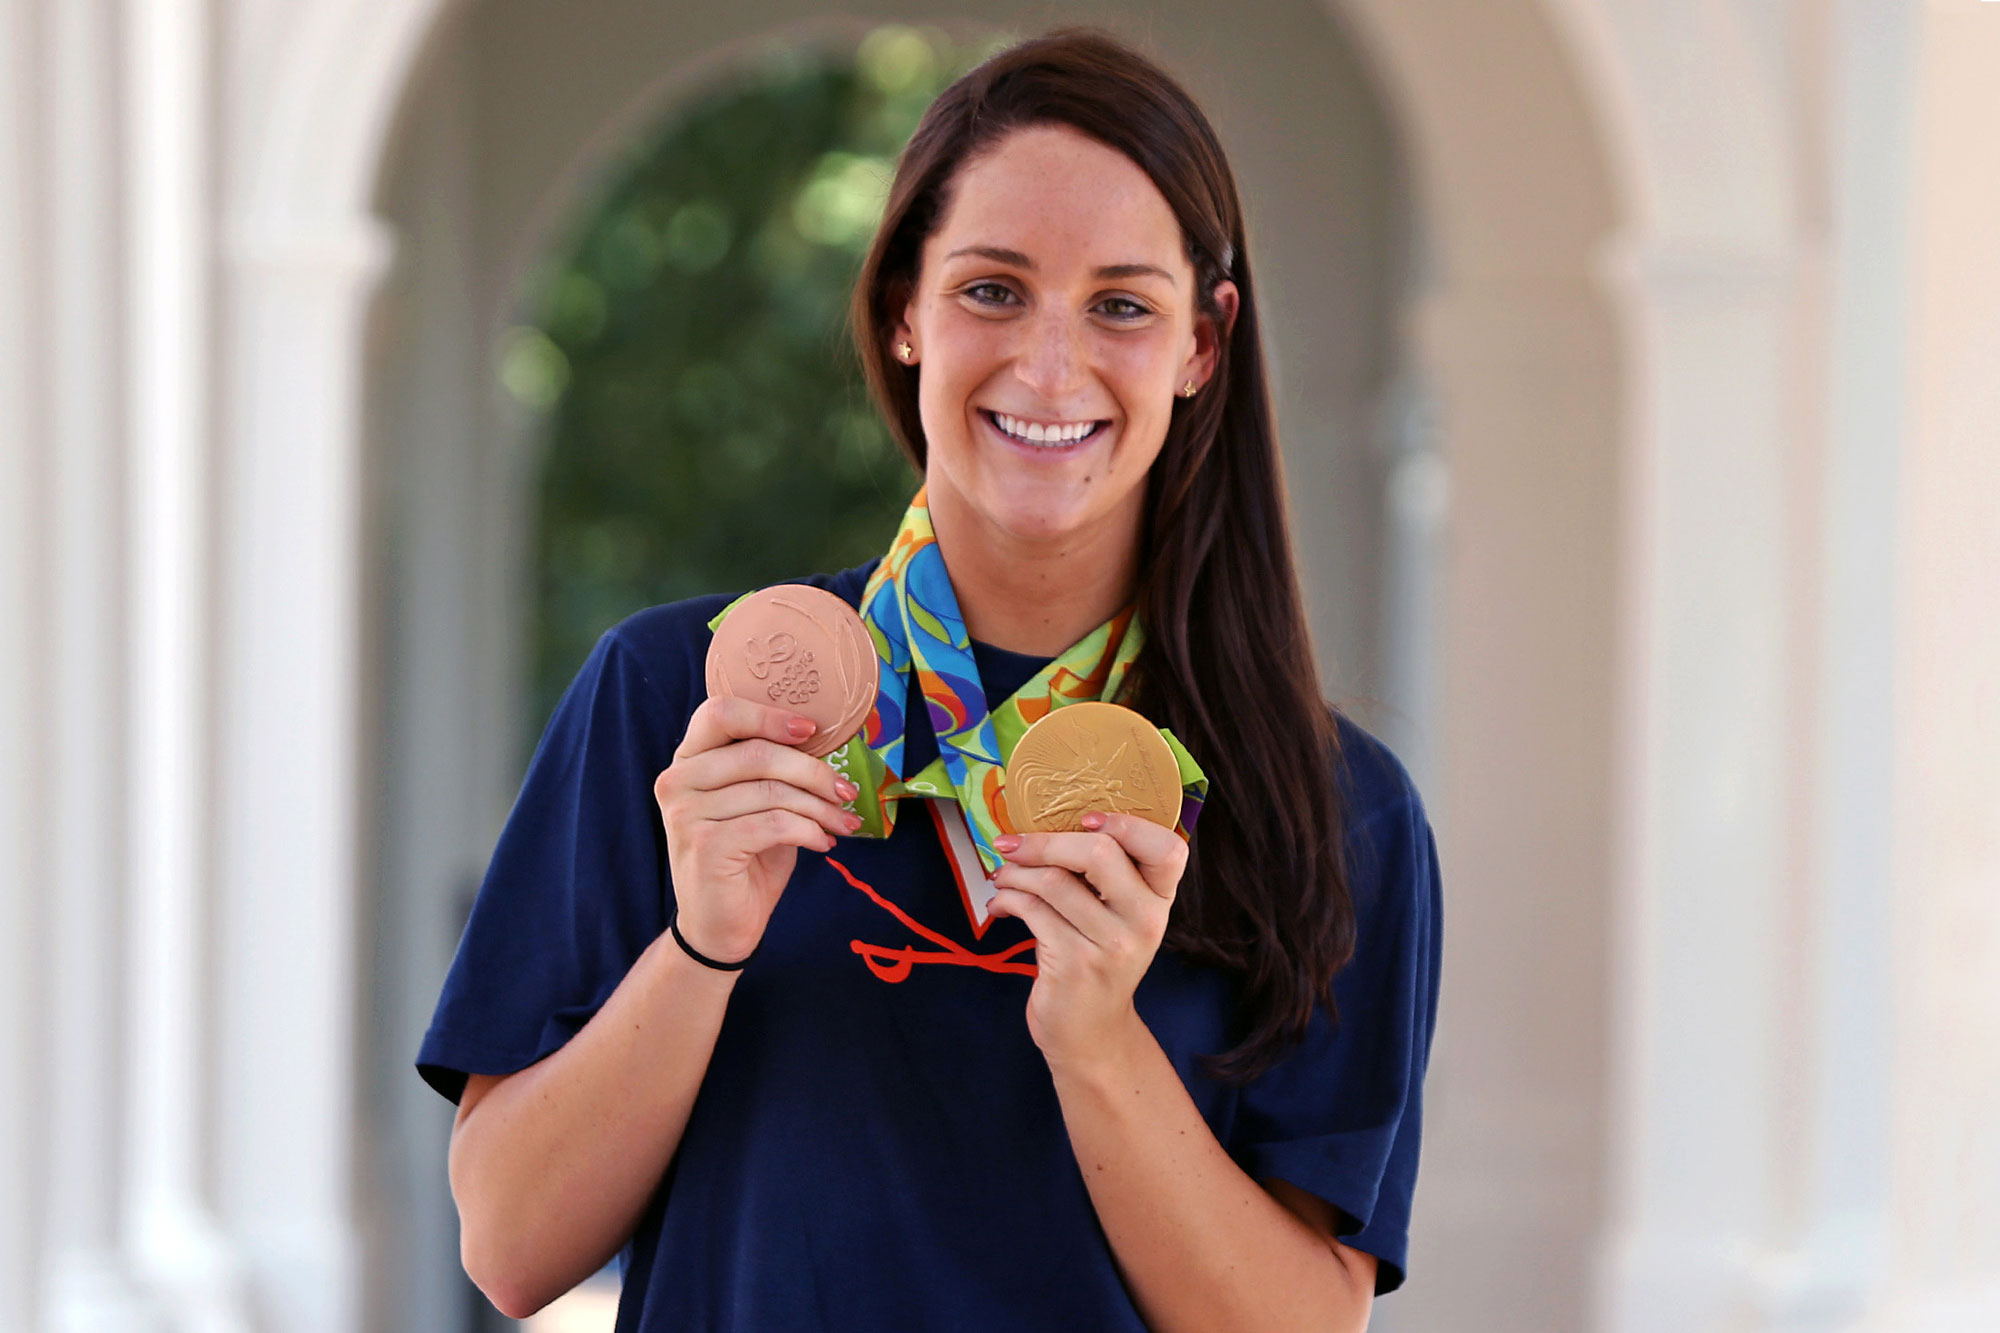 At the Rio Games, Smith won a gold medal as a member of the U.S. women's 800-meter freestyle relay team and a bronze medal as an individual in the 400-meter freestyle.